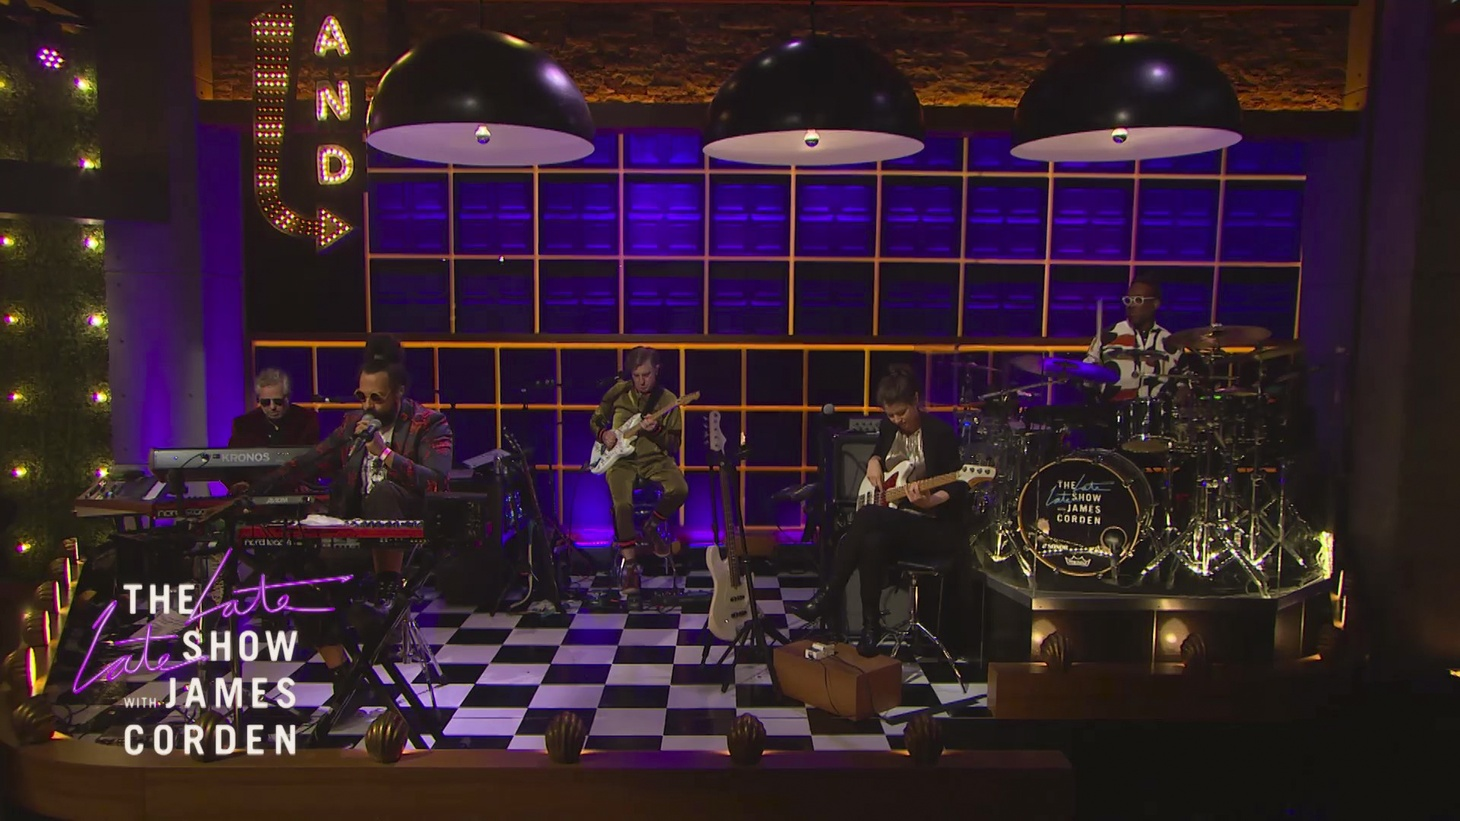 """Steve Scalfati, Reggie Watts, Tim Young, Hagar Ben Ari, and Guillermo Brown perform on """"The Late Late Show with James Corden"""" in August 2020."""